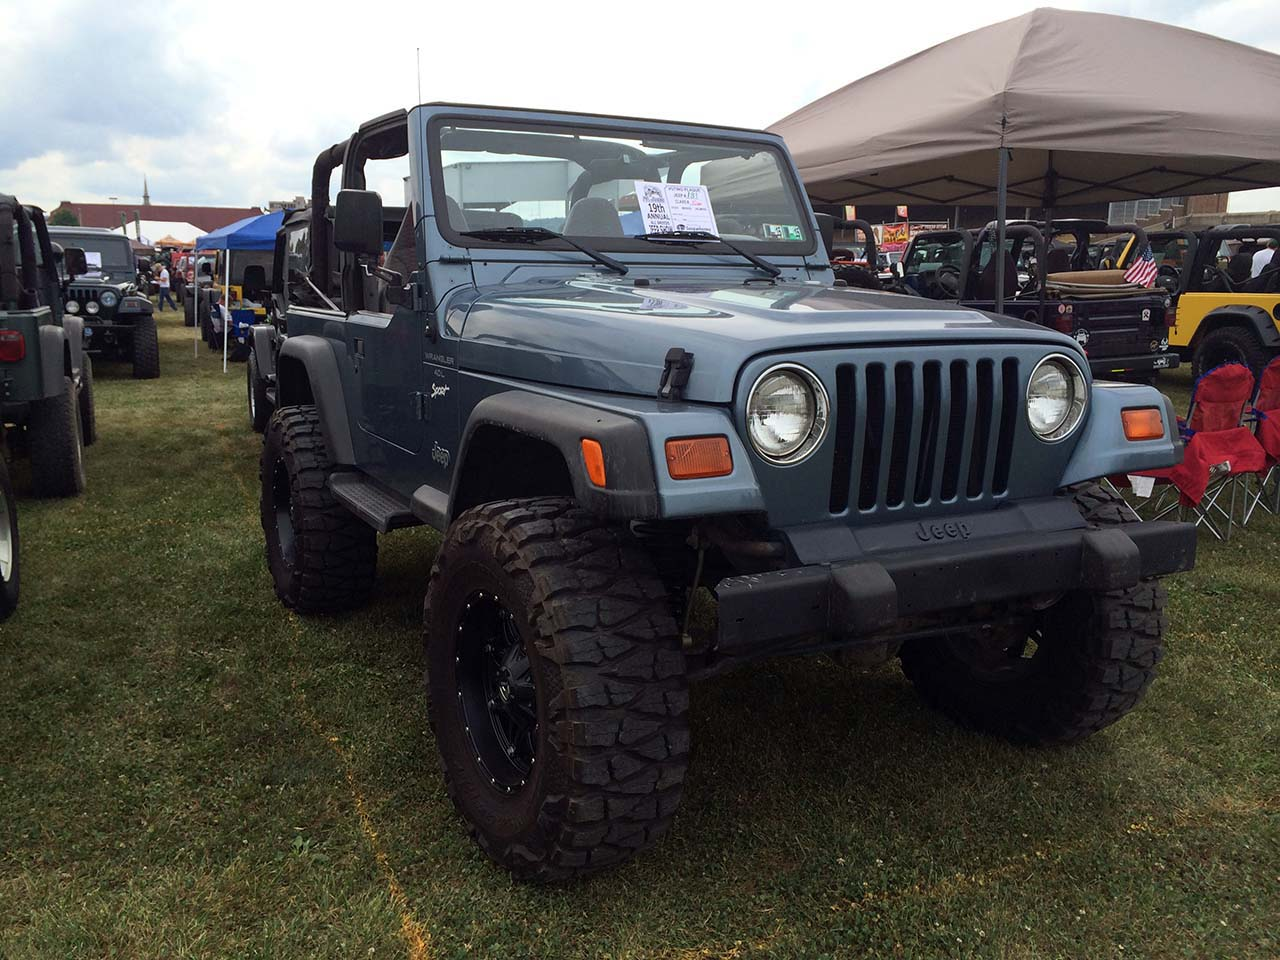 Ocean City Jeep Week >> PA Jeeps 2014 All Breeds Jeep Show - 19th Annual York PA | jeepfan.com